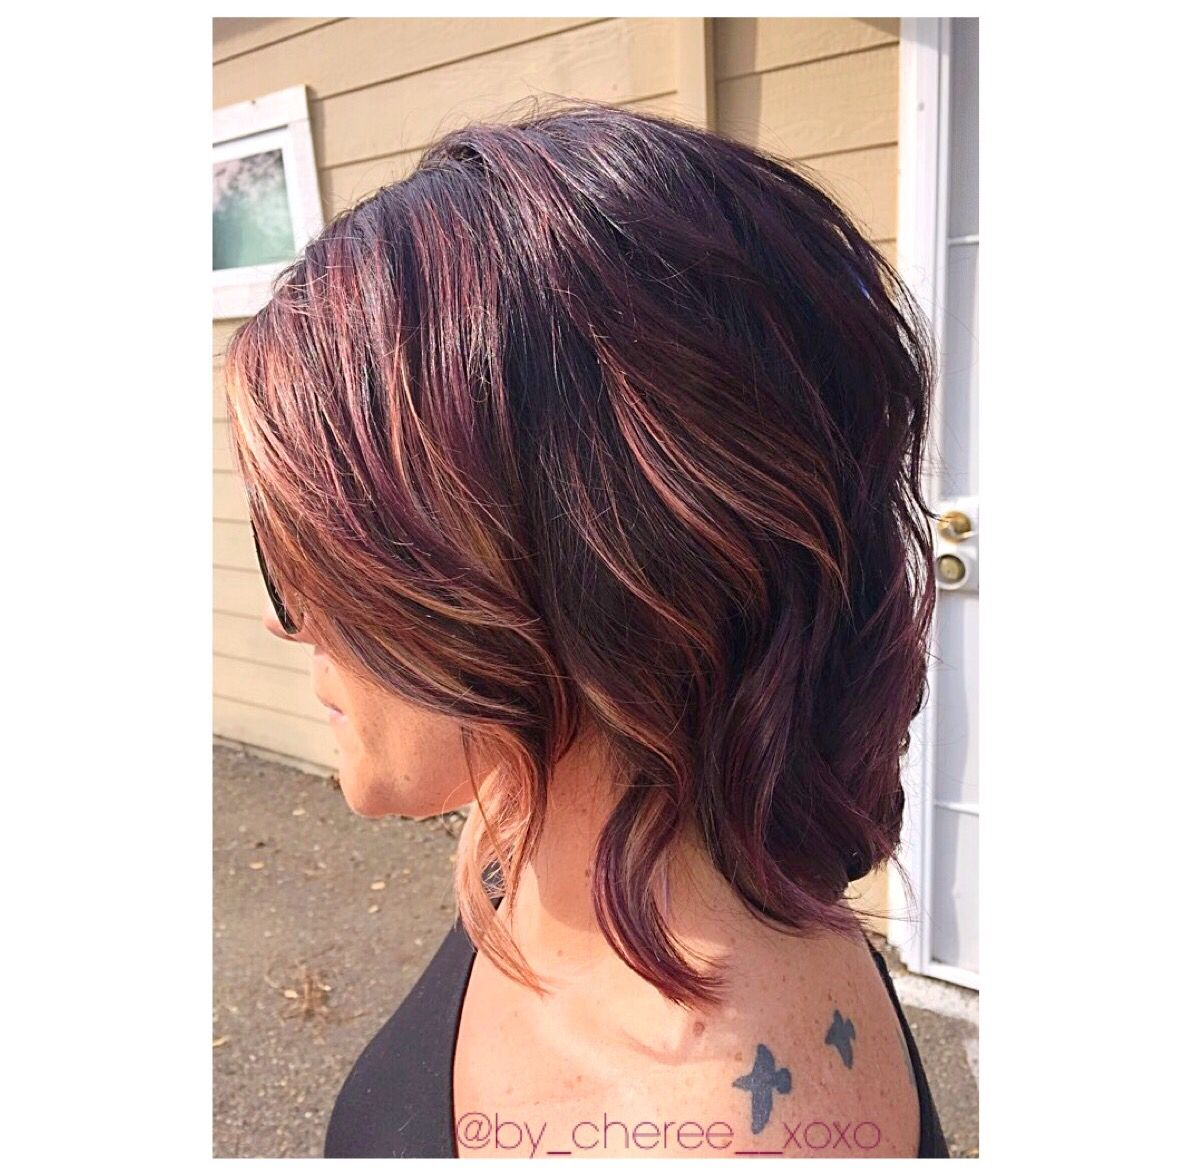 Merlot Hair Color With Highlights I Created Using Joico 4vr With